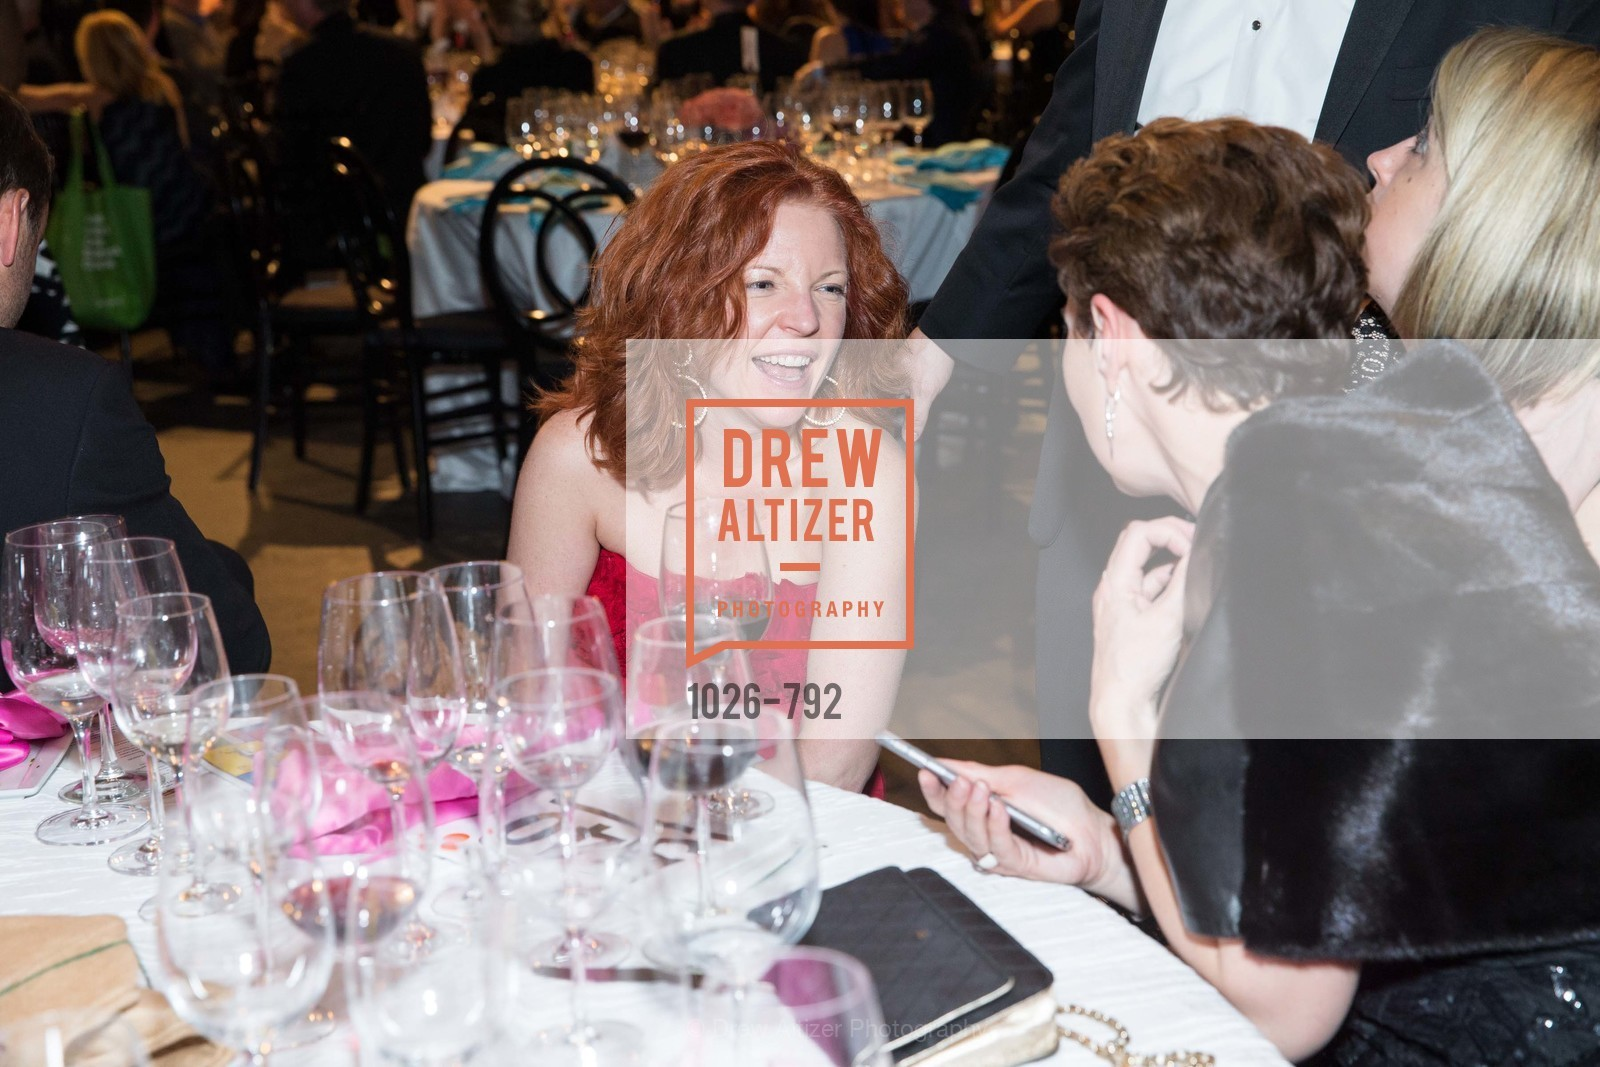 Elaine Asher, MEALS ON WHEELS OF SAN FRANCISCO'S 28th Annual Star Chefs and Vintners Gala, US, April 19th, 2015,Drew Altizer, Drew Altizer Photography, full-service agency, private events, San Francisco photographer, photographer california